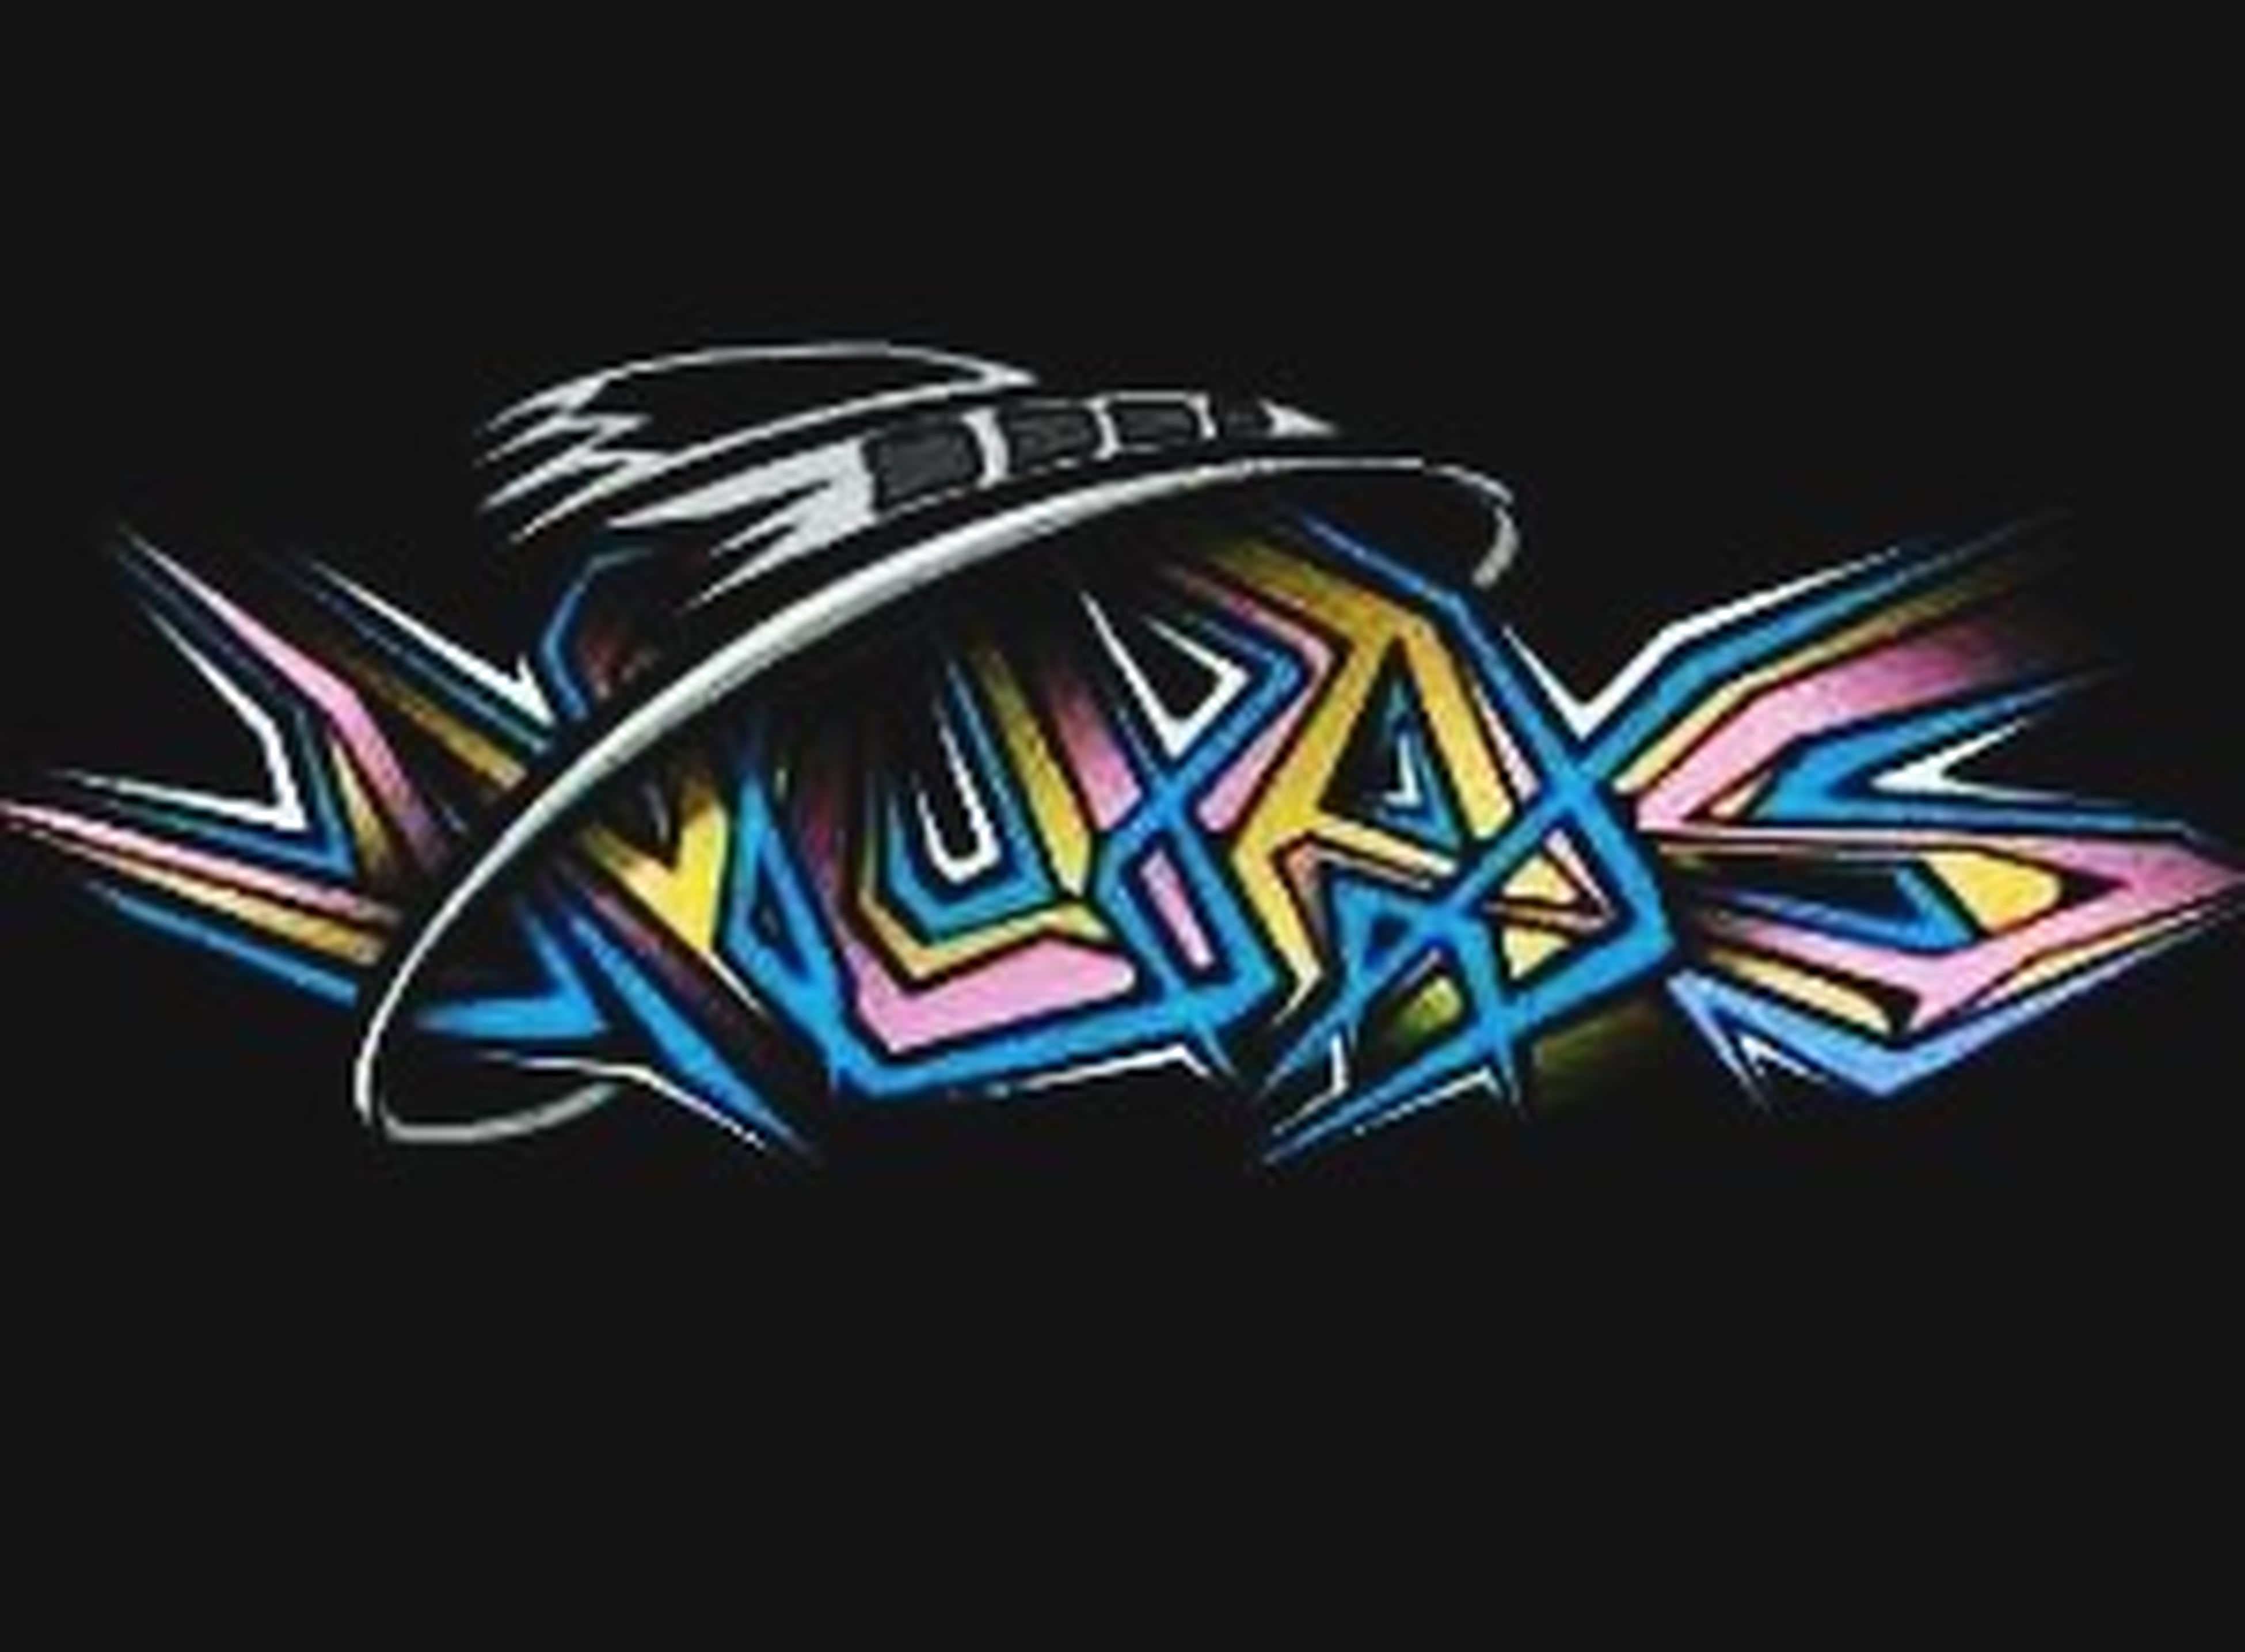 multi colored, creativity, art, art and craft, night, illuminated, pattern, colorful, animal representation, no people, blue, design, graffiti, striped, copy space, arts culture and entertainment, low angle view, close-up, text, black background